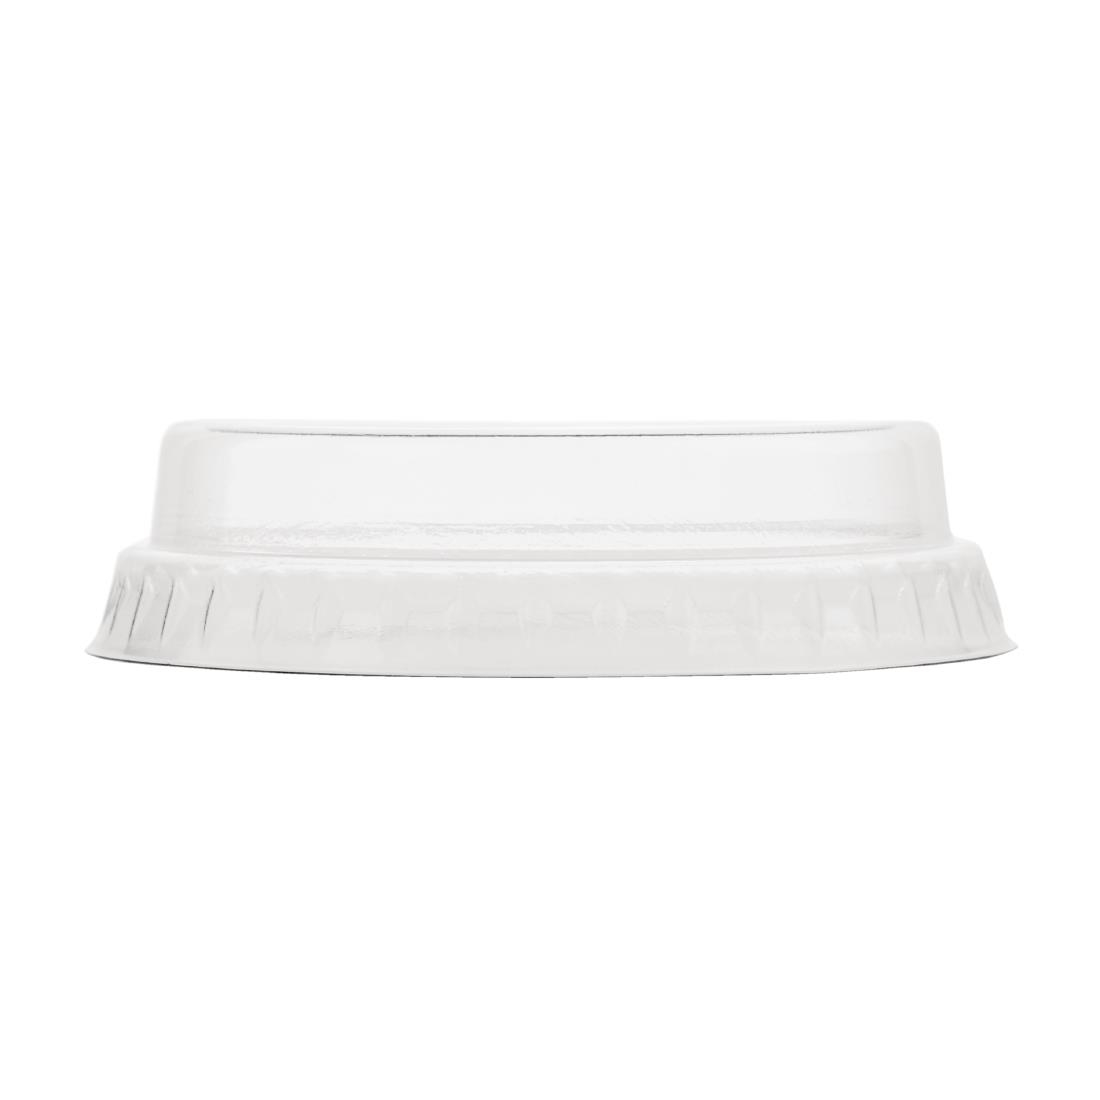 Vegware Compostable Flat Lids With No Hole 200ml / 7oz Pack of 1000